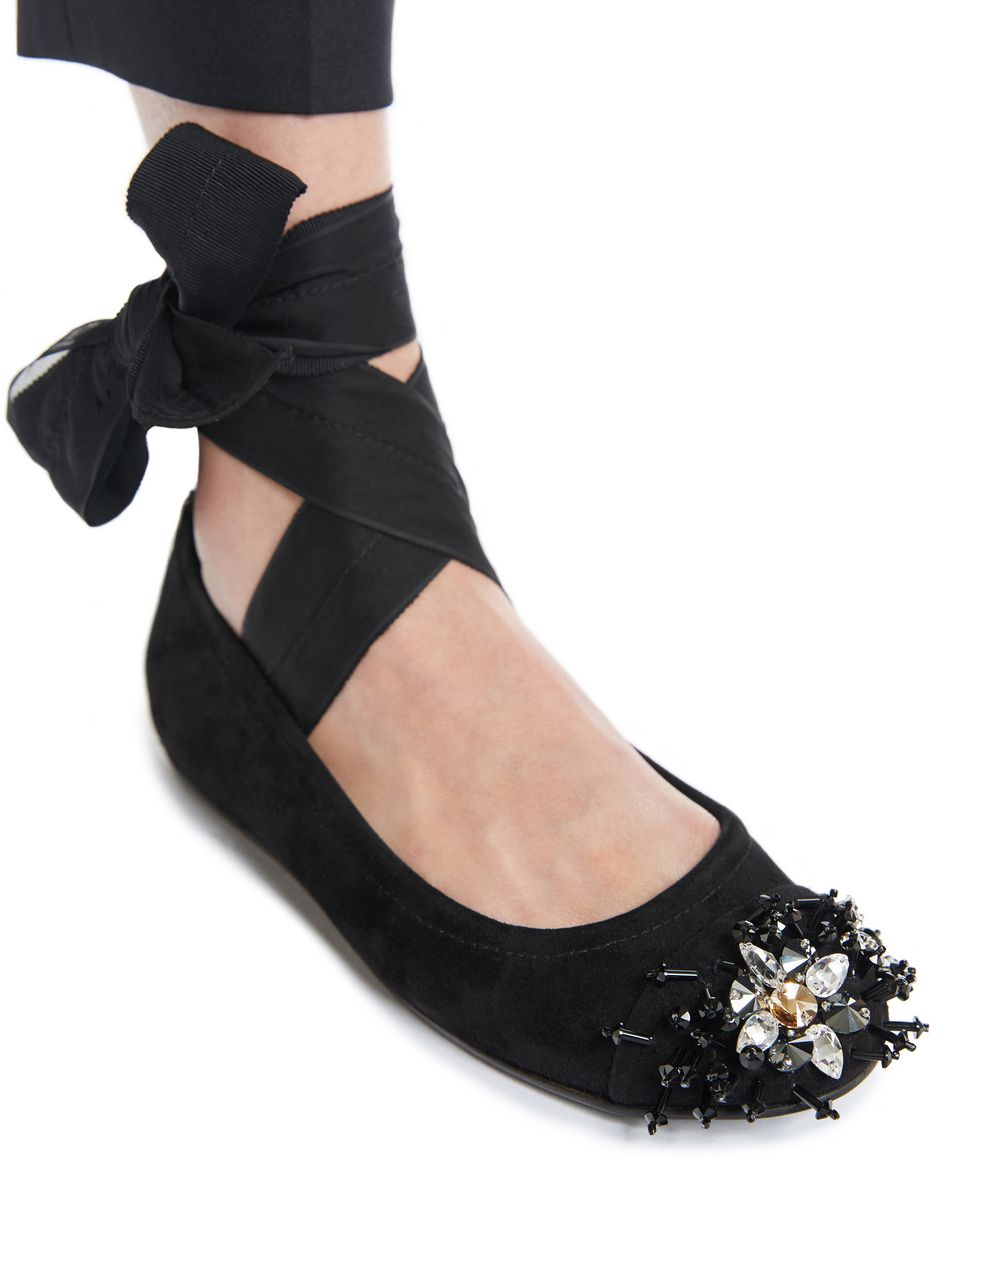 EMBROIDERED BALLET FLAT WITH BOW - Lanvin